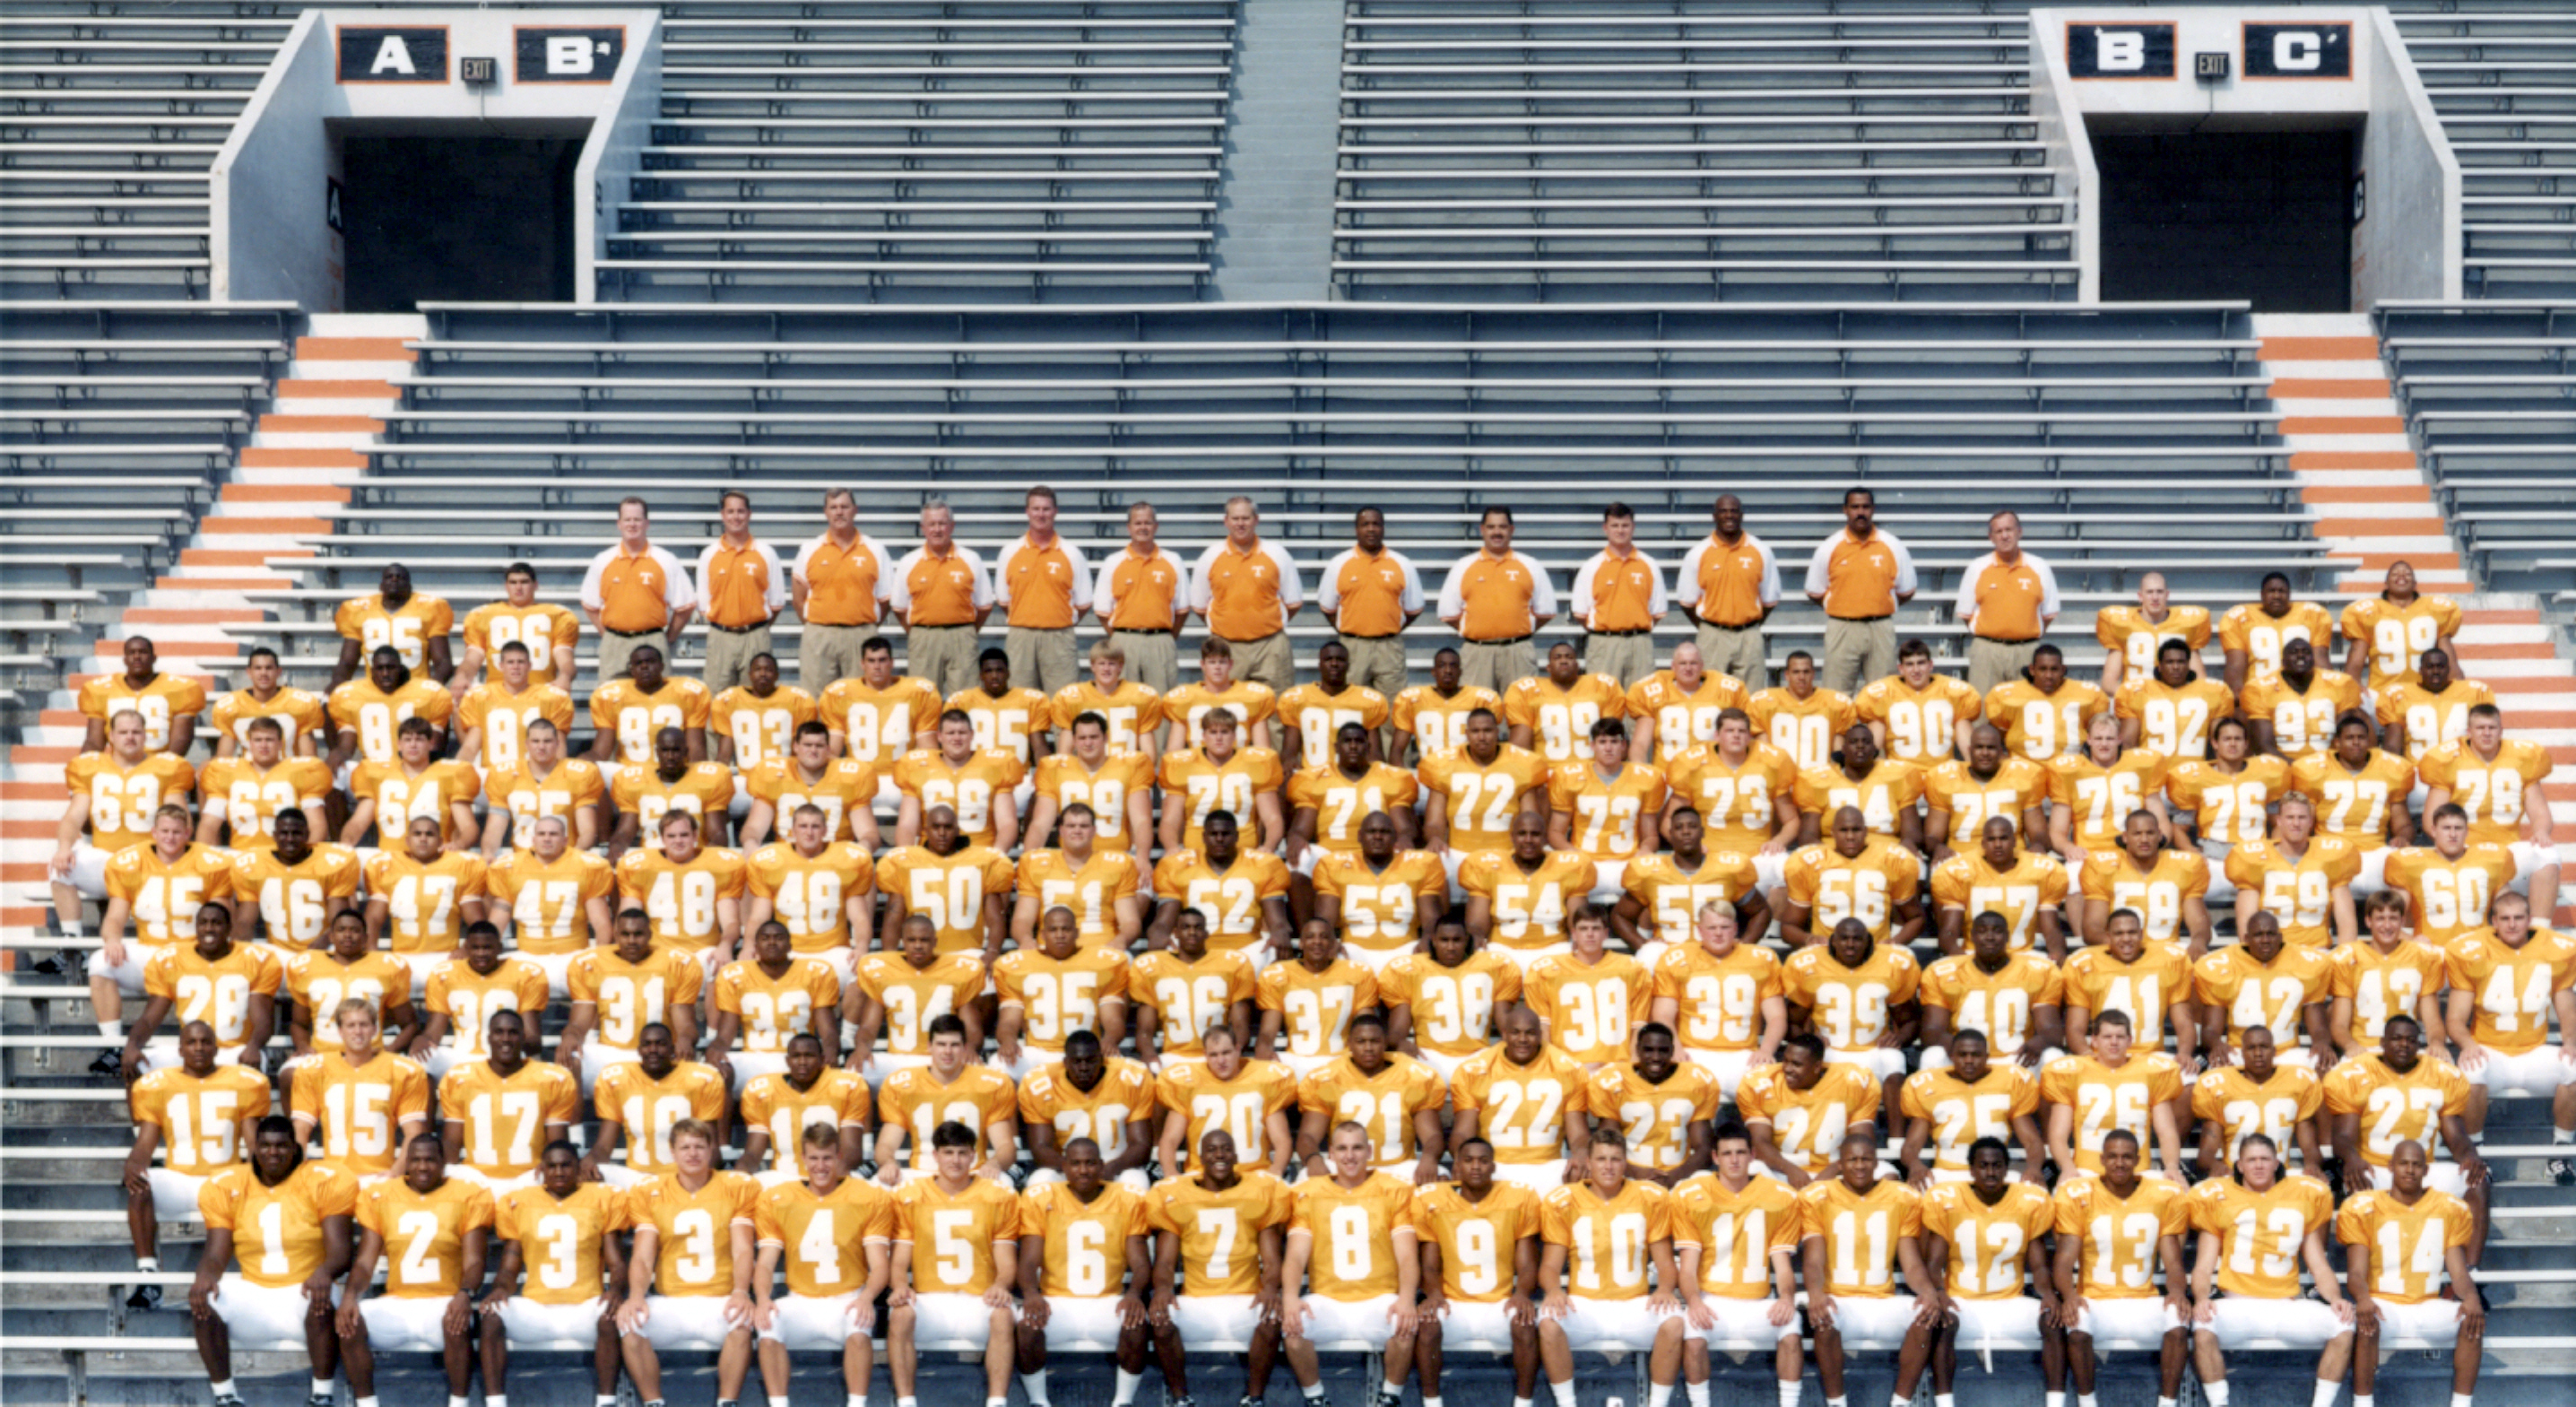 The 1998 National Champion Vols Where Are They Now